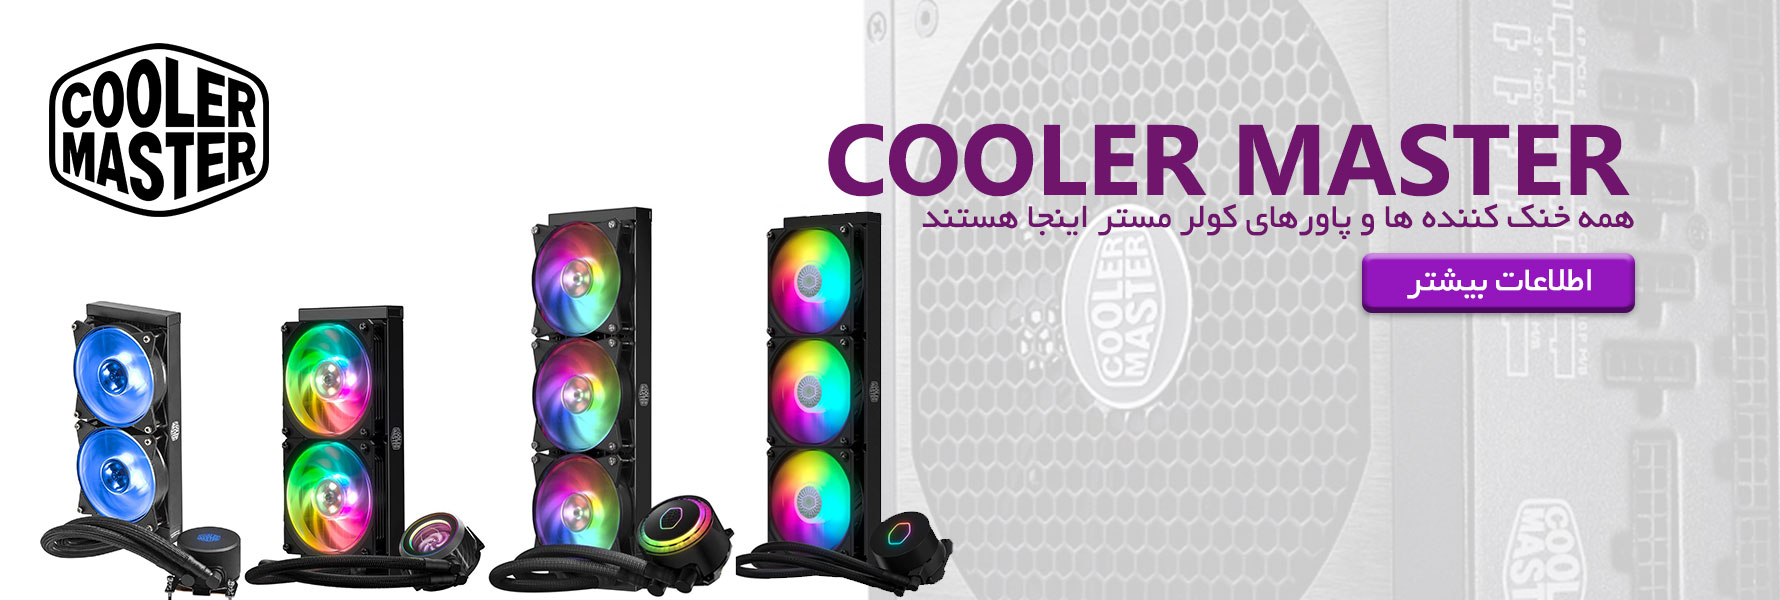 Cooler Master Power and Cooling